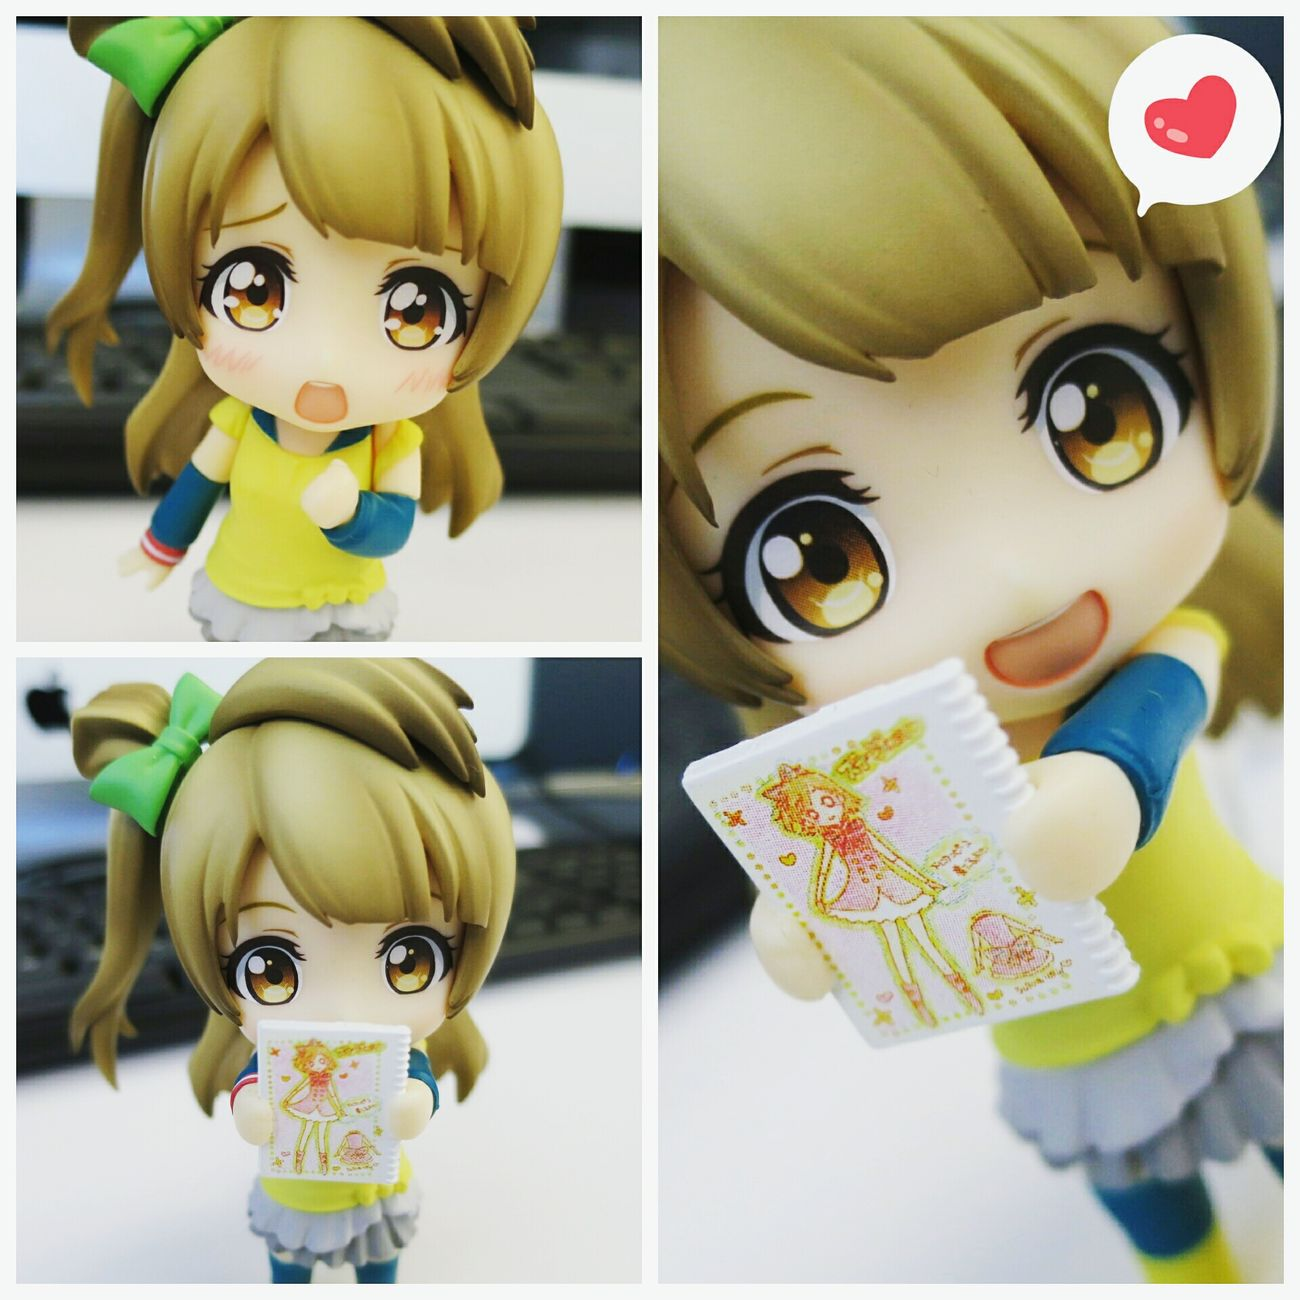 Ugh Kotori is soo cute😍💕 Nendoroid Nendophotography Goodsmilecompany Toyphotography Figurephotography Kotoriminami Lovelive Animefigure